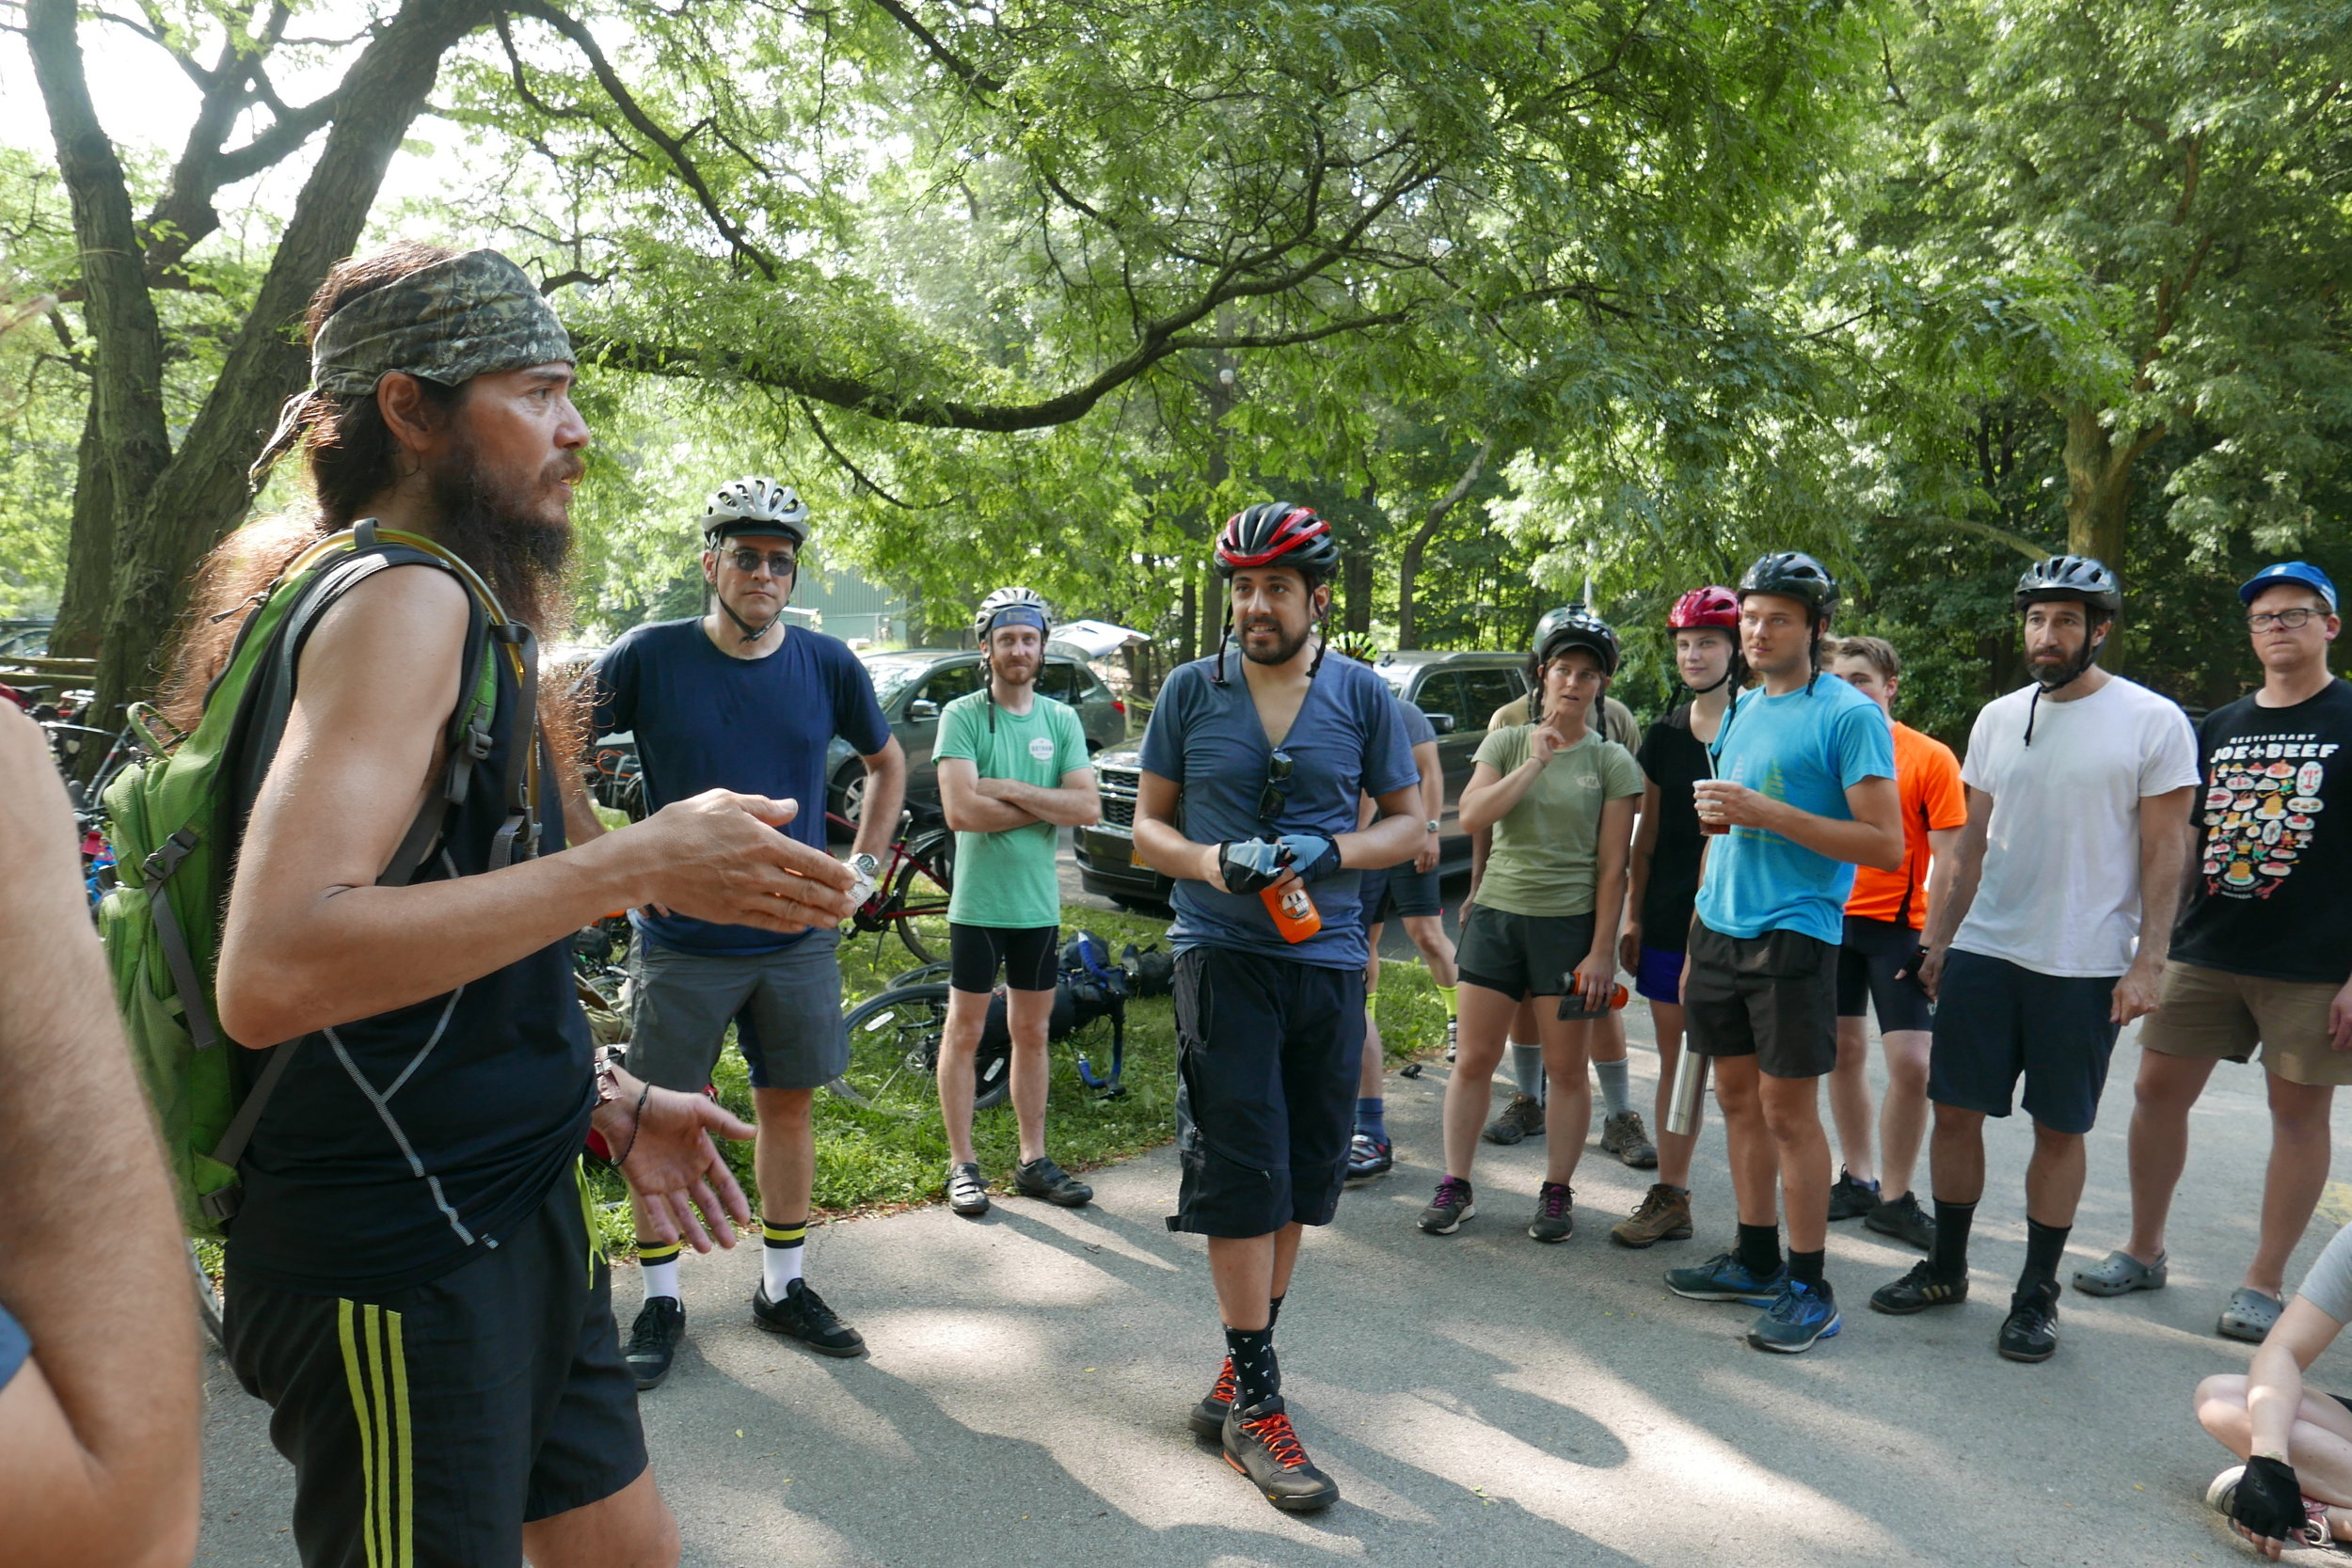 At Mile 14, the group has a mandatory stop at Van Cortland Park in the Bronx so that we can regroup